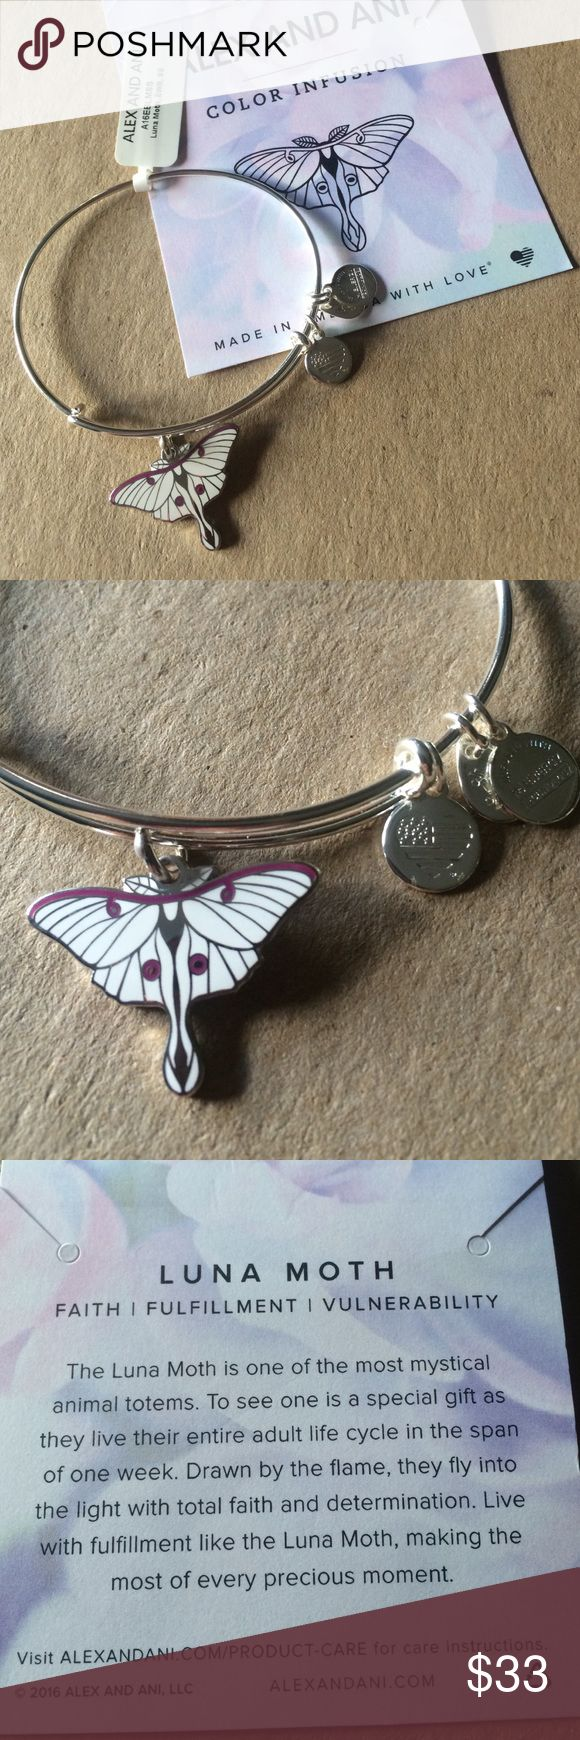 ✨NWT Alex and Ani Luna moth bangle✨ Brand new with tags...shiny silver bangle with white apoxy. Symbolizes faith, fulfillment and vulnerability. Comes with meaning card. From a smoke and pet free home. ❌NO TRADES❌ Alex & Ani Jewelry Bracelets